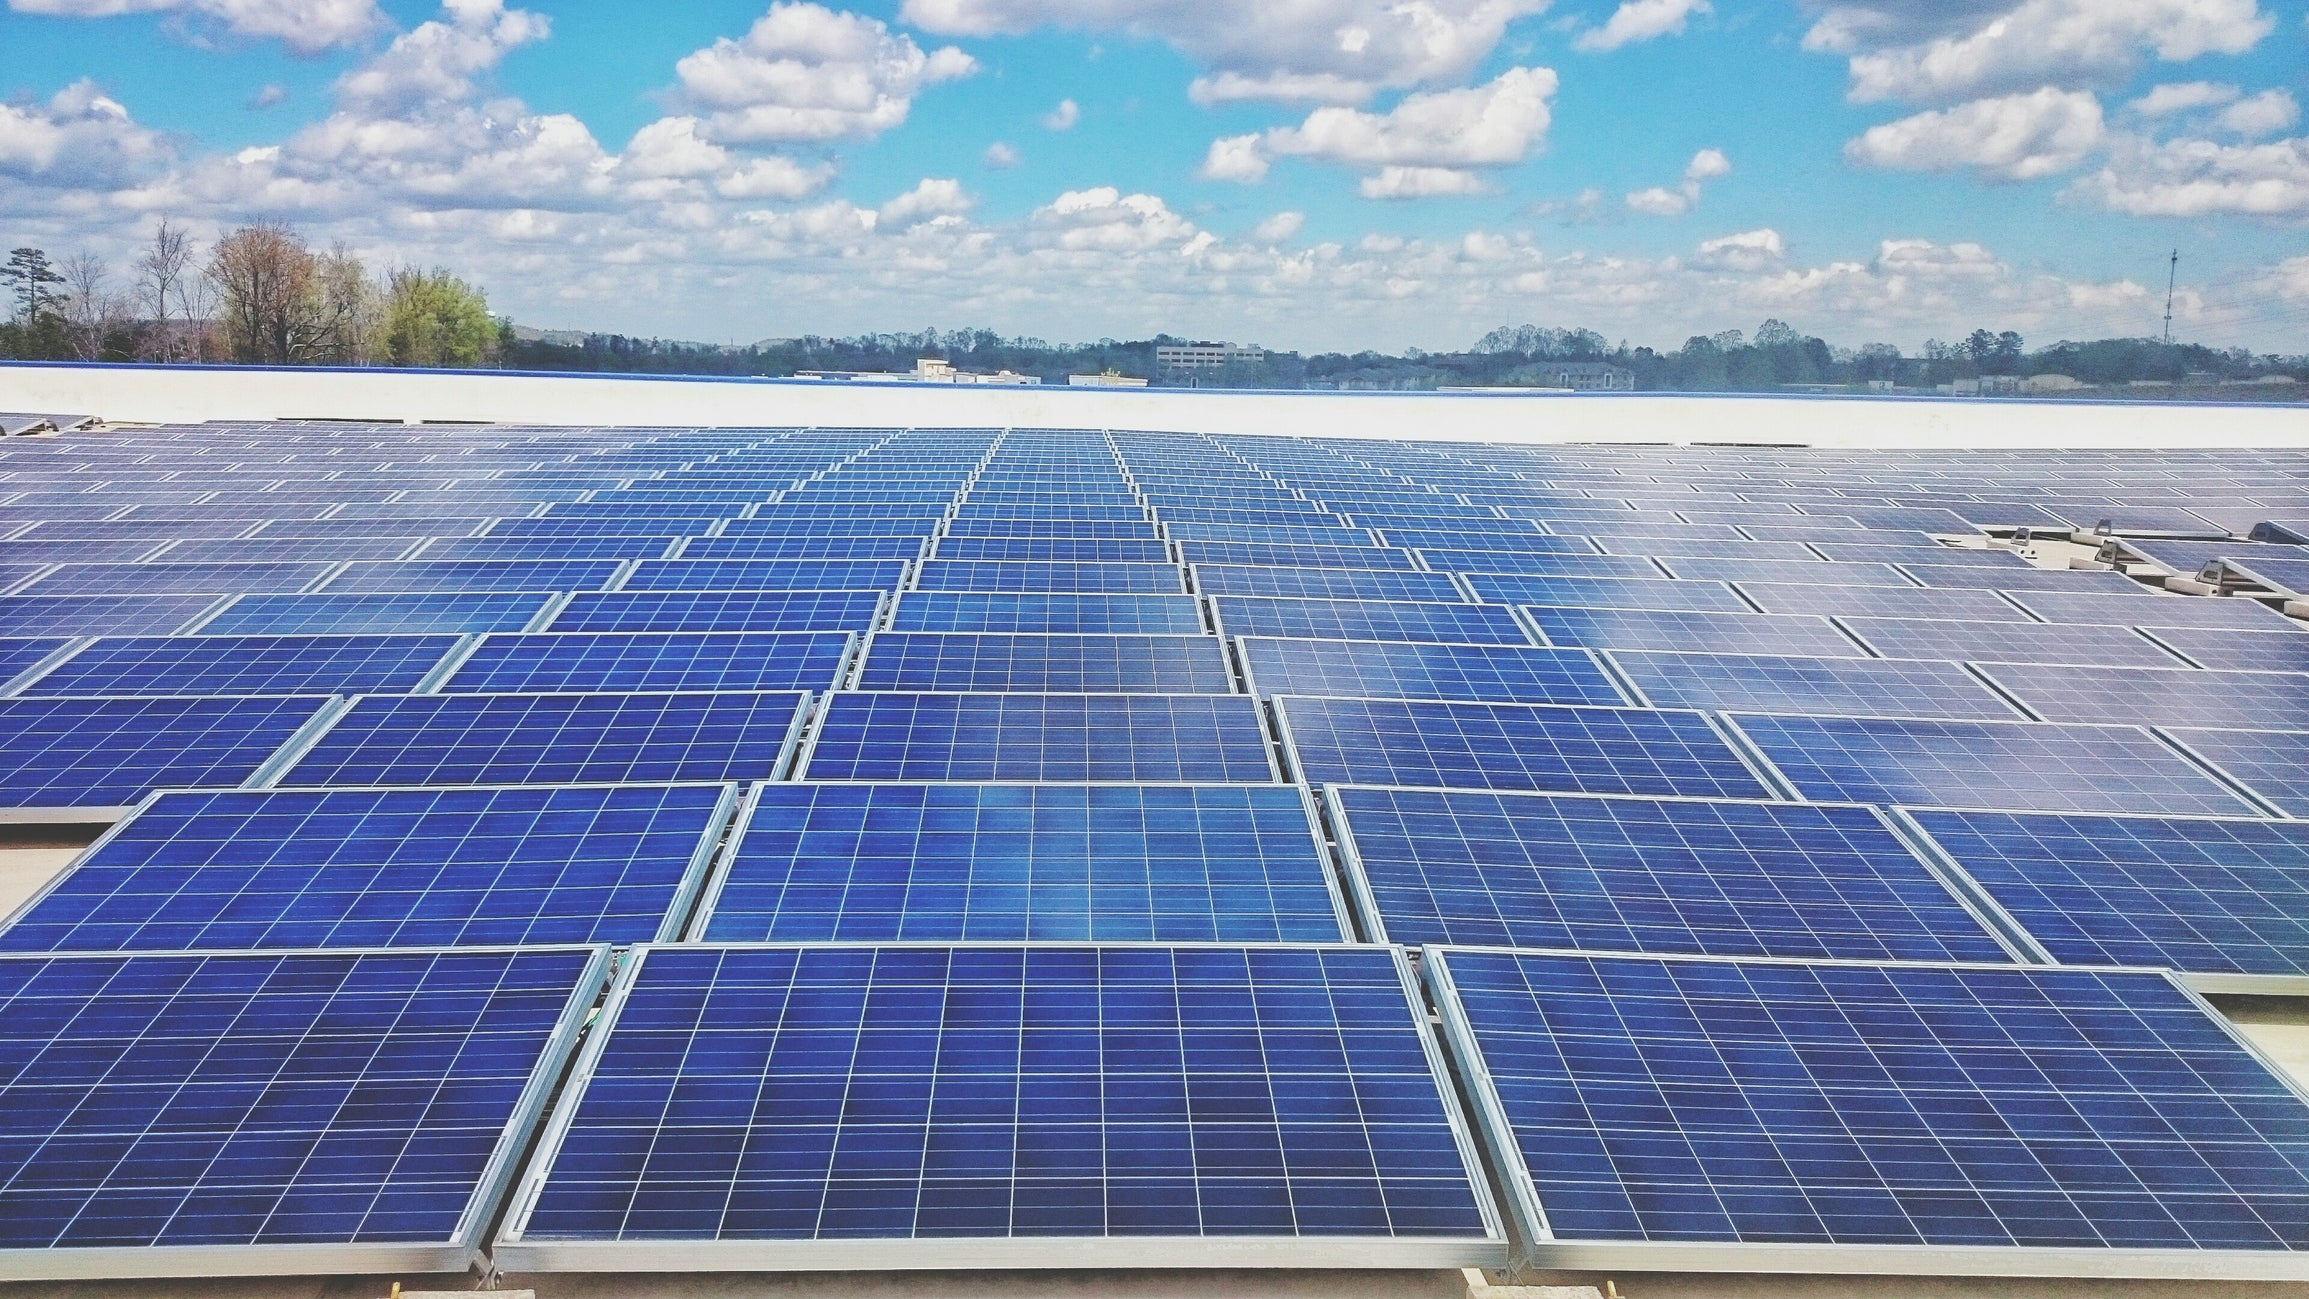 Solar Power Is About To Boom In The Sunshine State